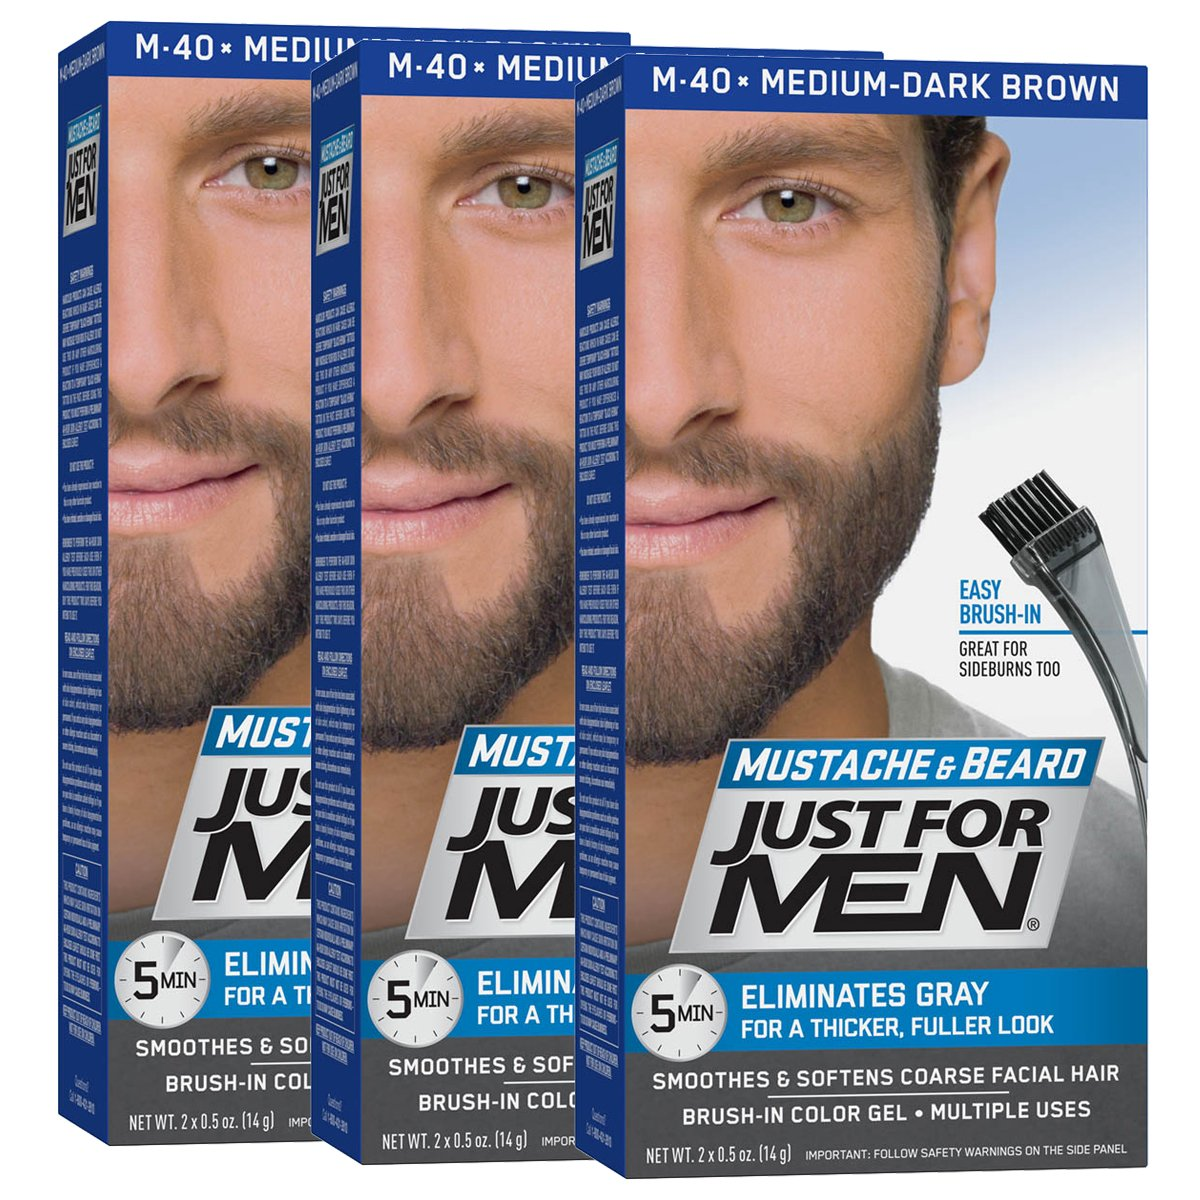 Just For Men Mustache and Beard Brush-In Color Gel, Medium Dark Brown (Pack of 3) 011509049117